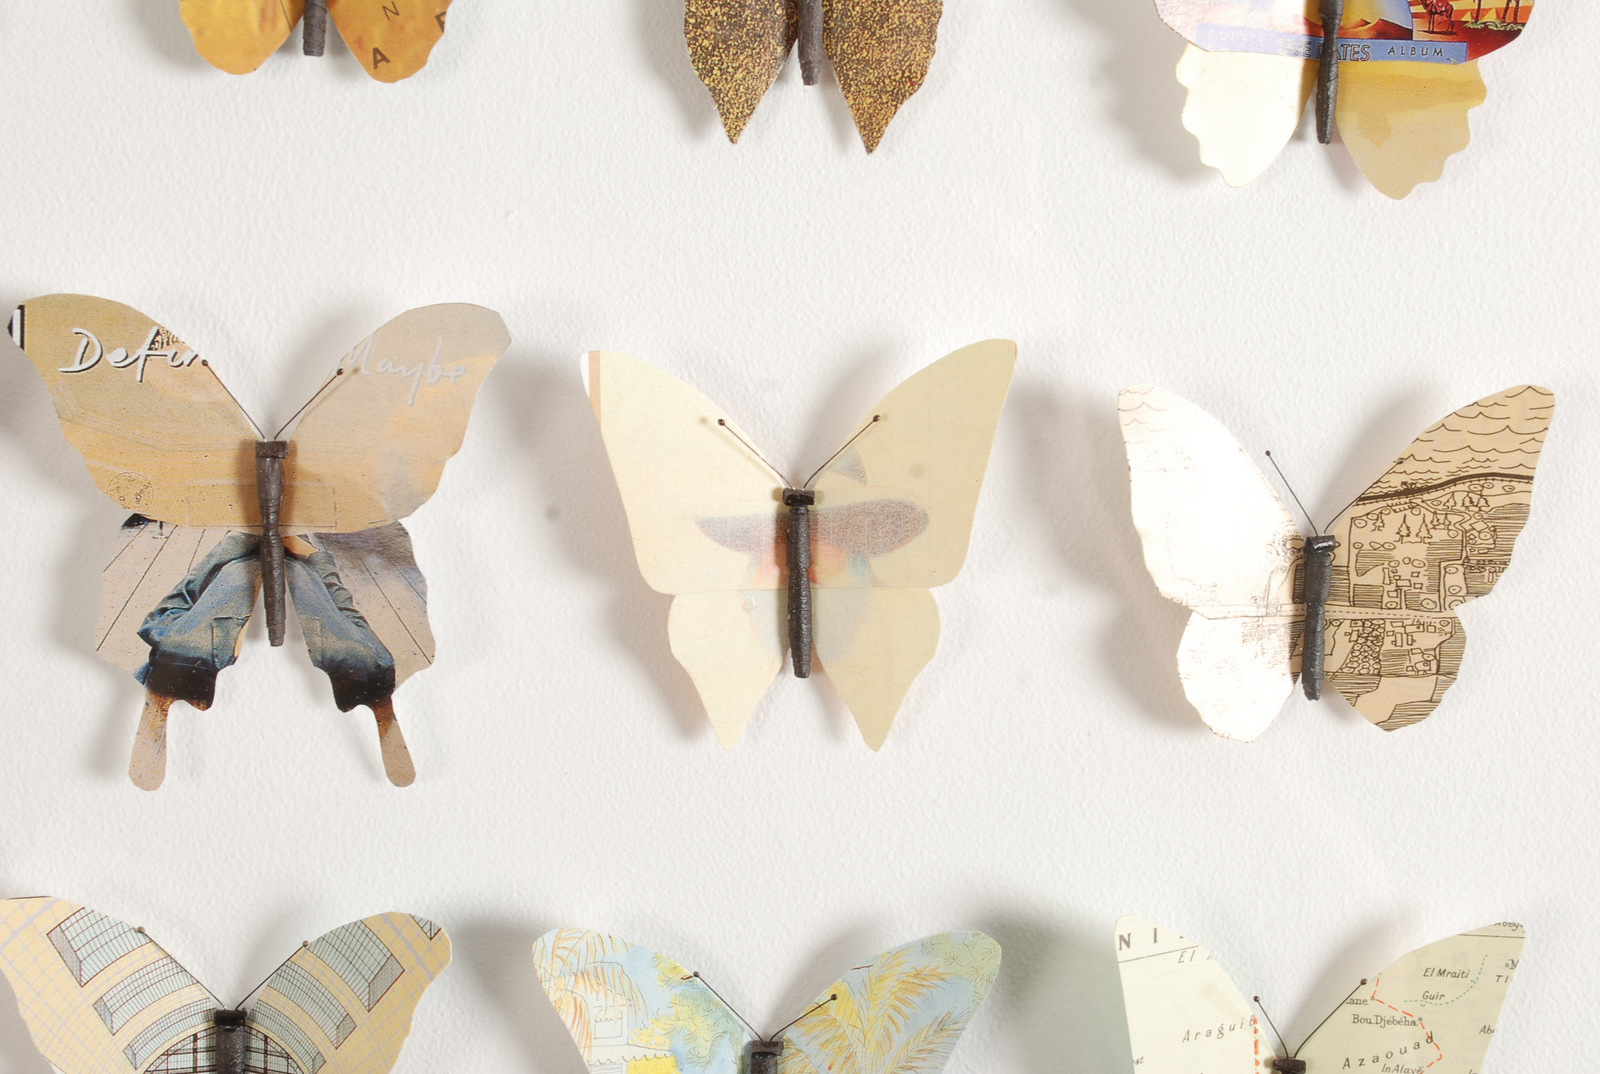 Lot 54 - JAMES STEWART 36 Yellow Butterflies Mixed media Inscribed on the back 2013 67 x 68 cm